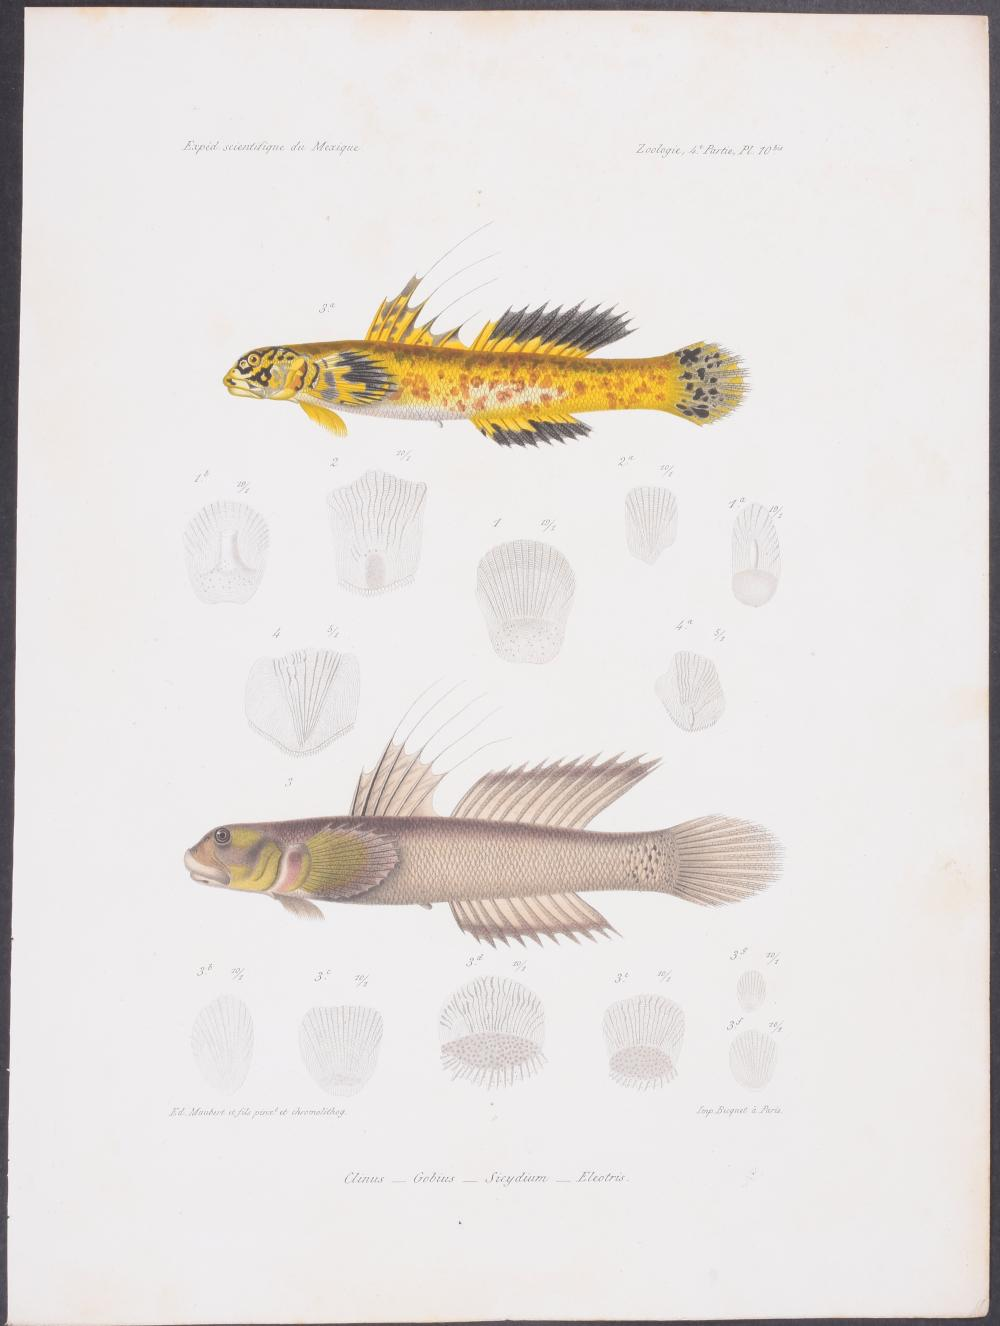 Lot 11126: Vaillant & Bocourt - Fish. 10b